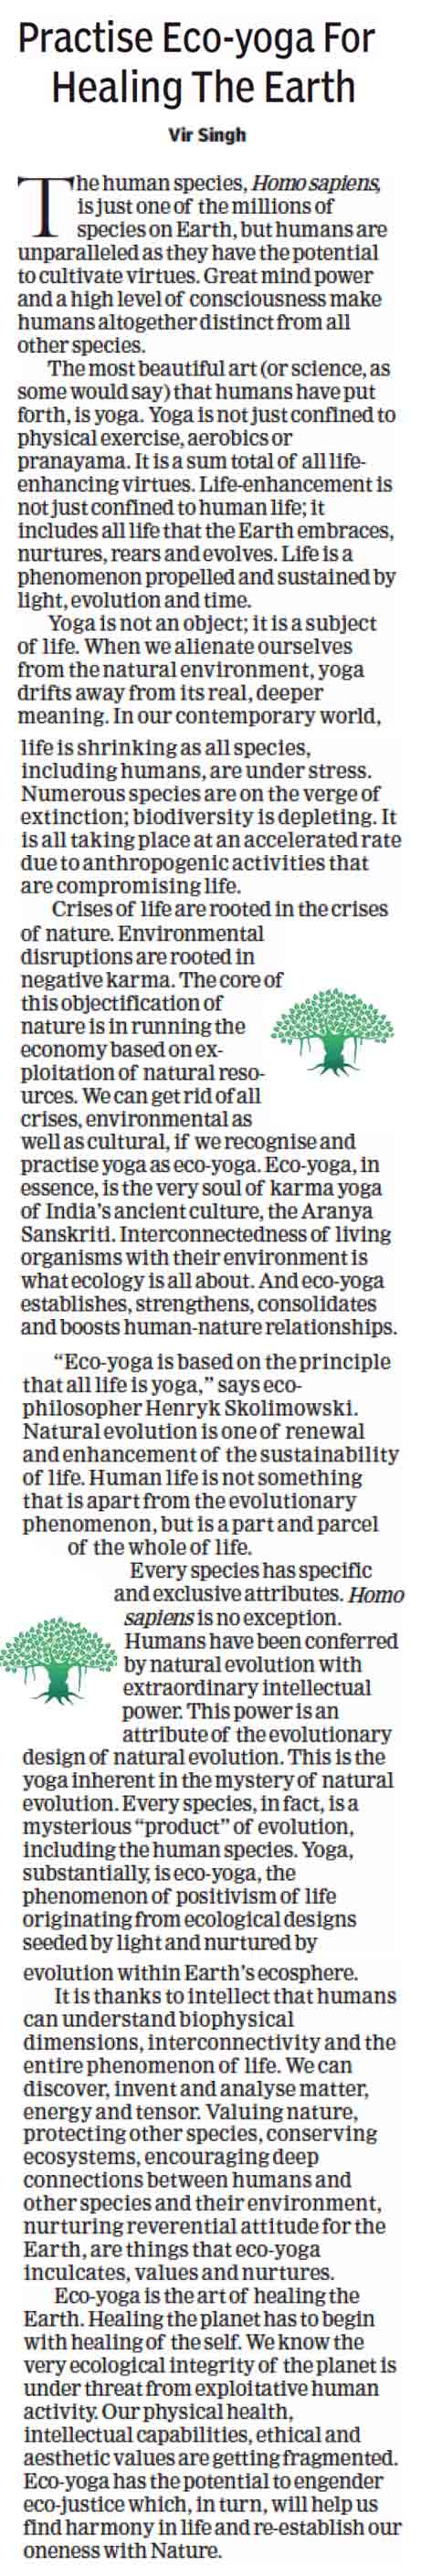 Practise Eco-yoga for healing the earth